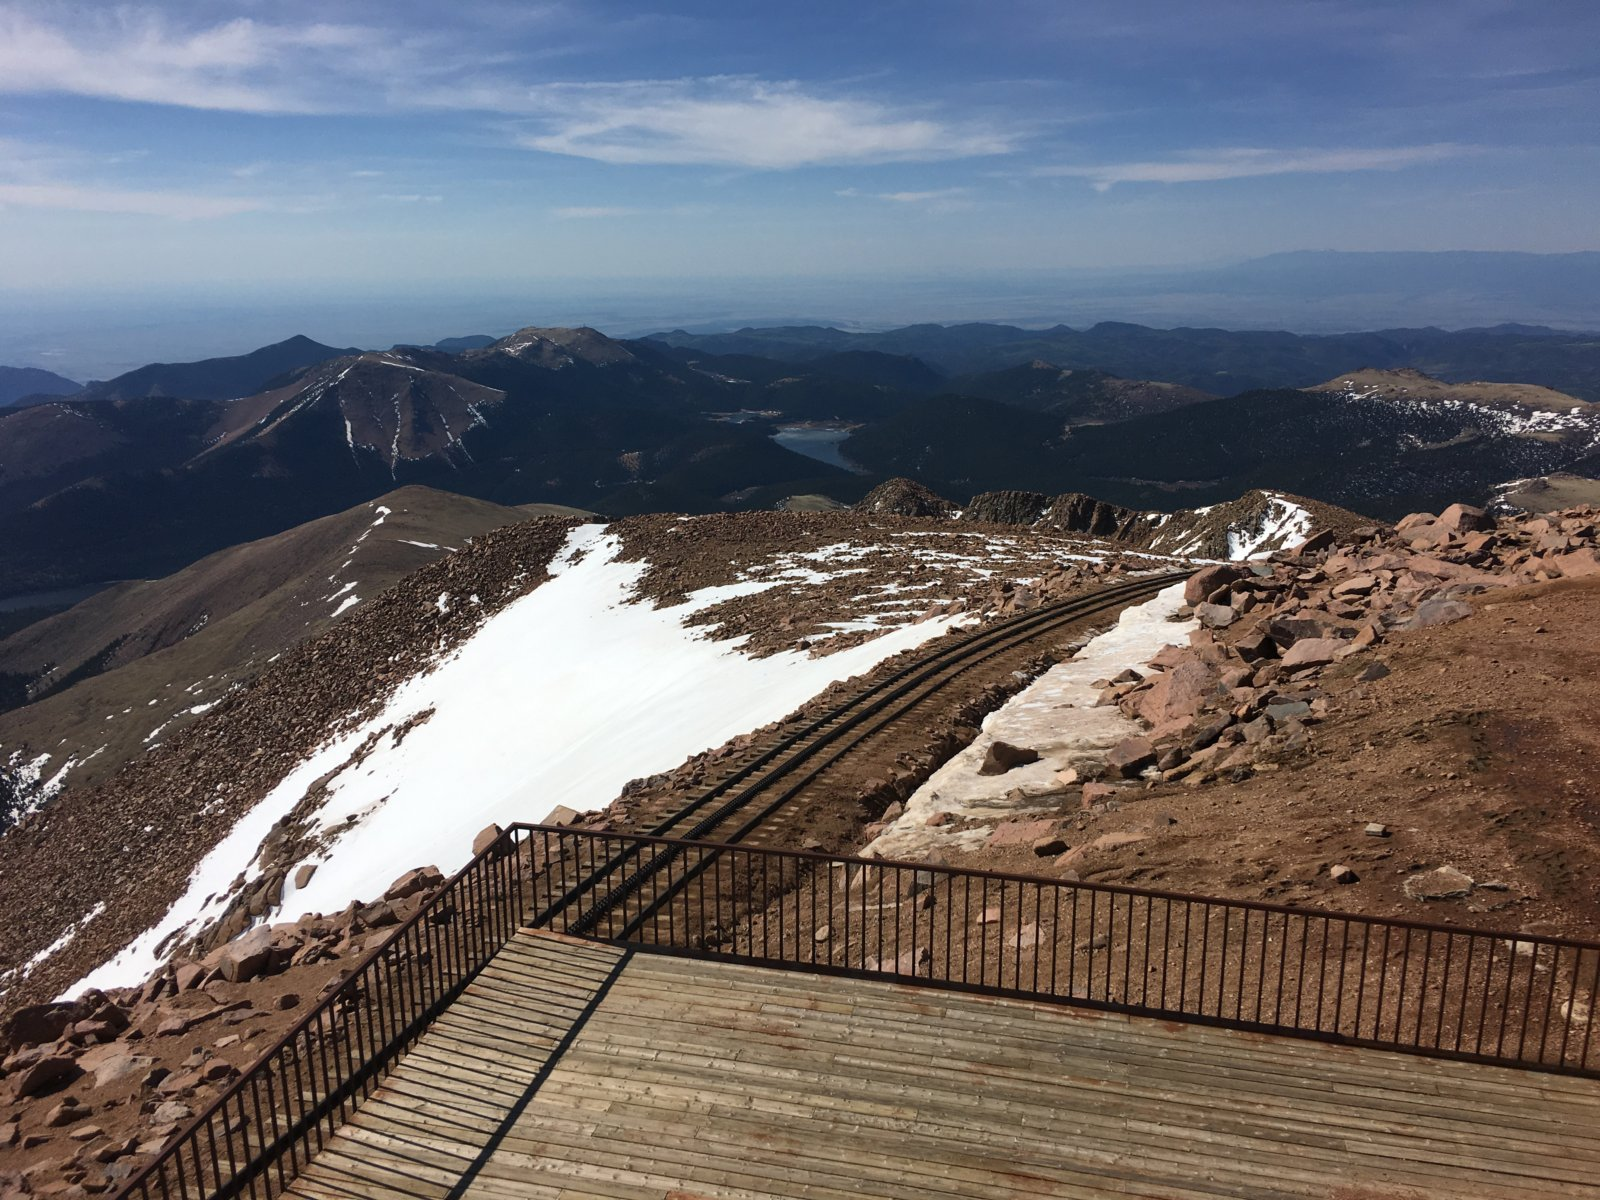 609-PikesPeak6